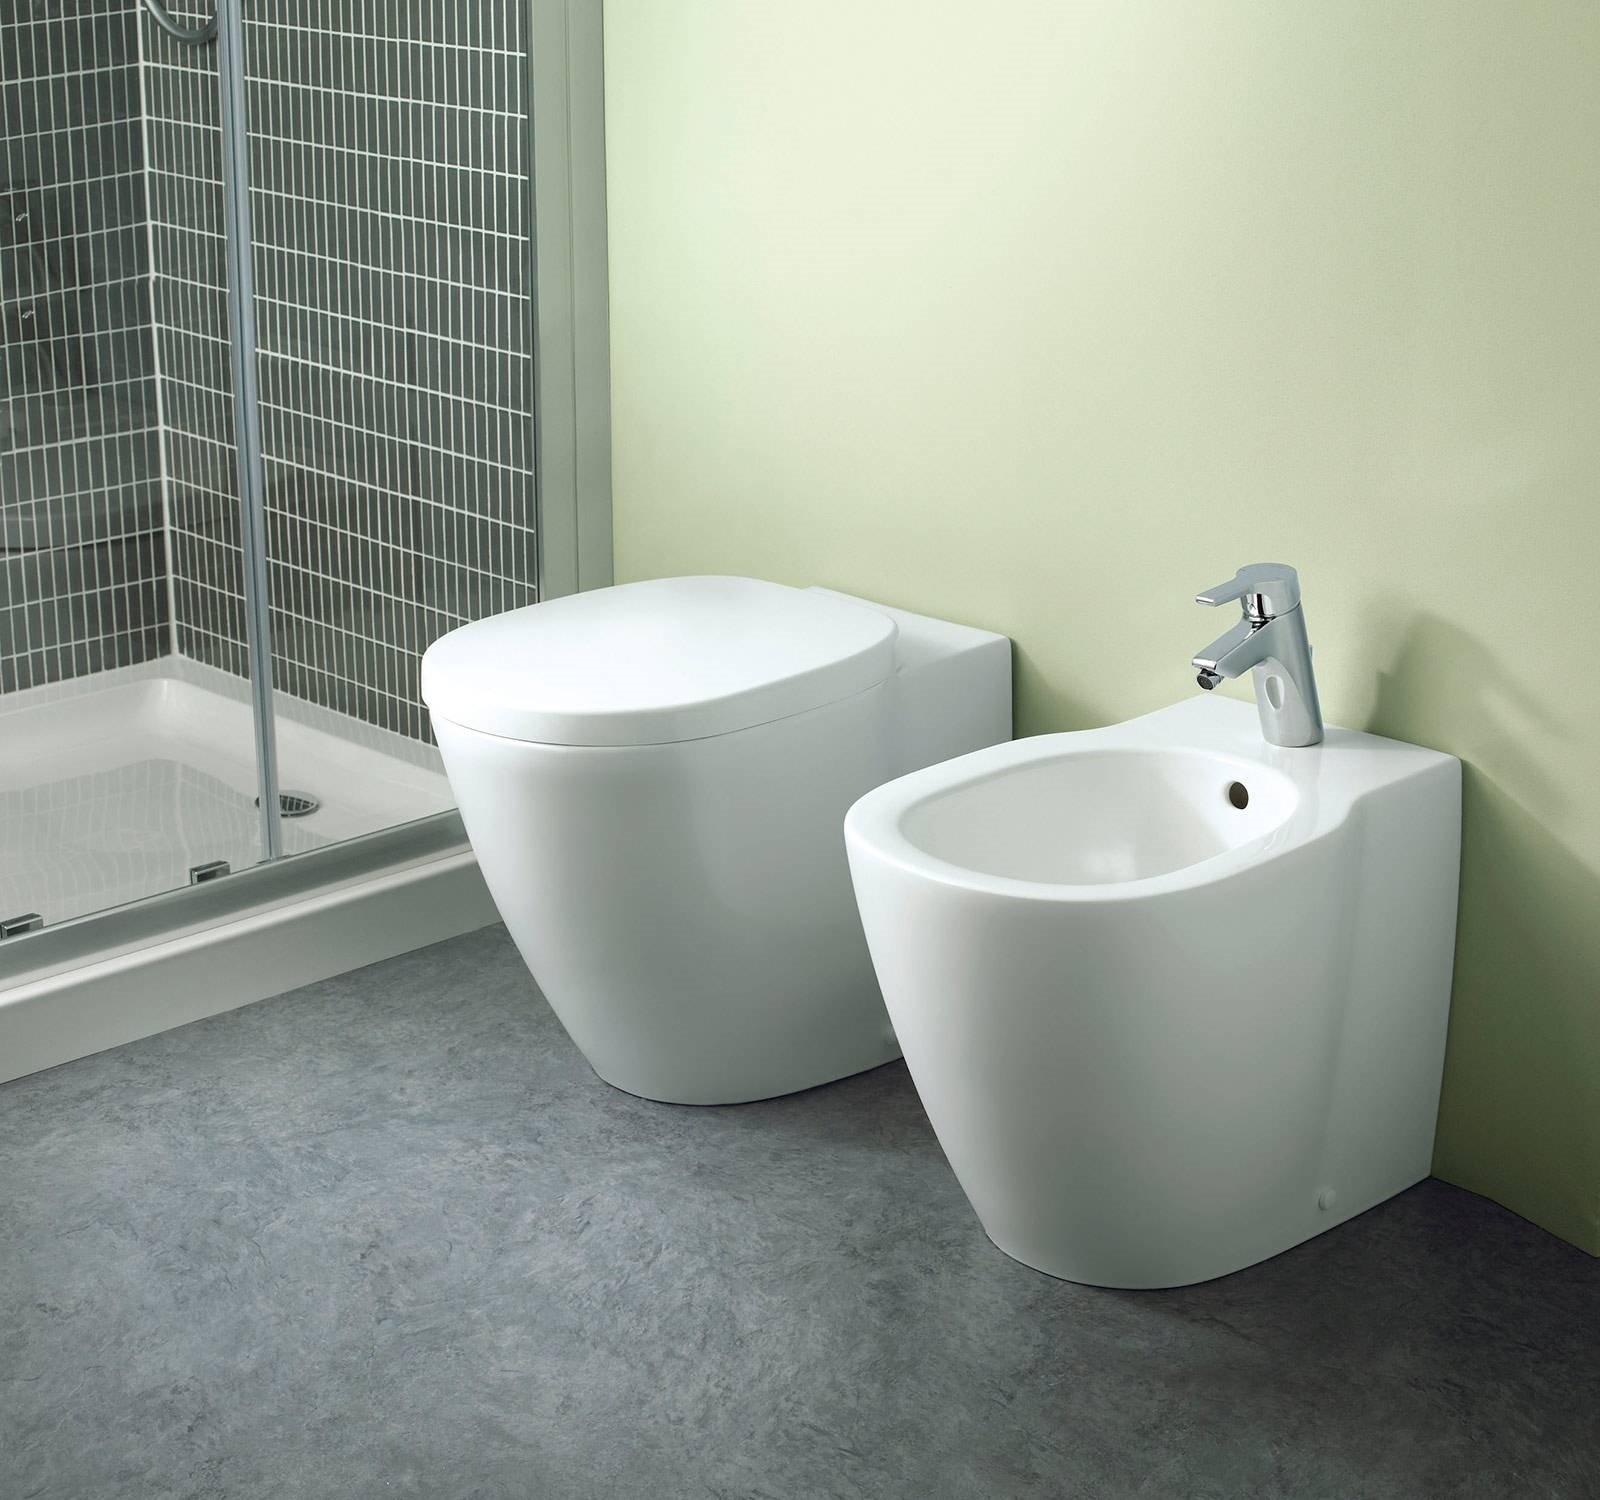 Ideal standard connect sanitari - Rubinetteria bagno ideal standard prezzi ...